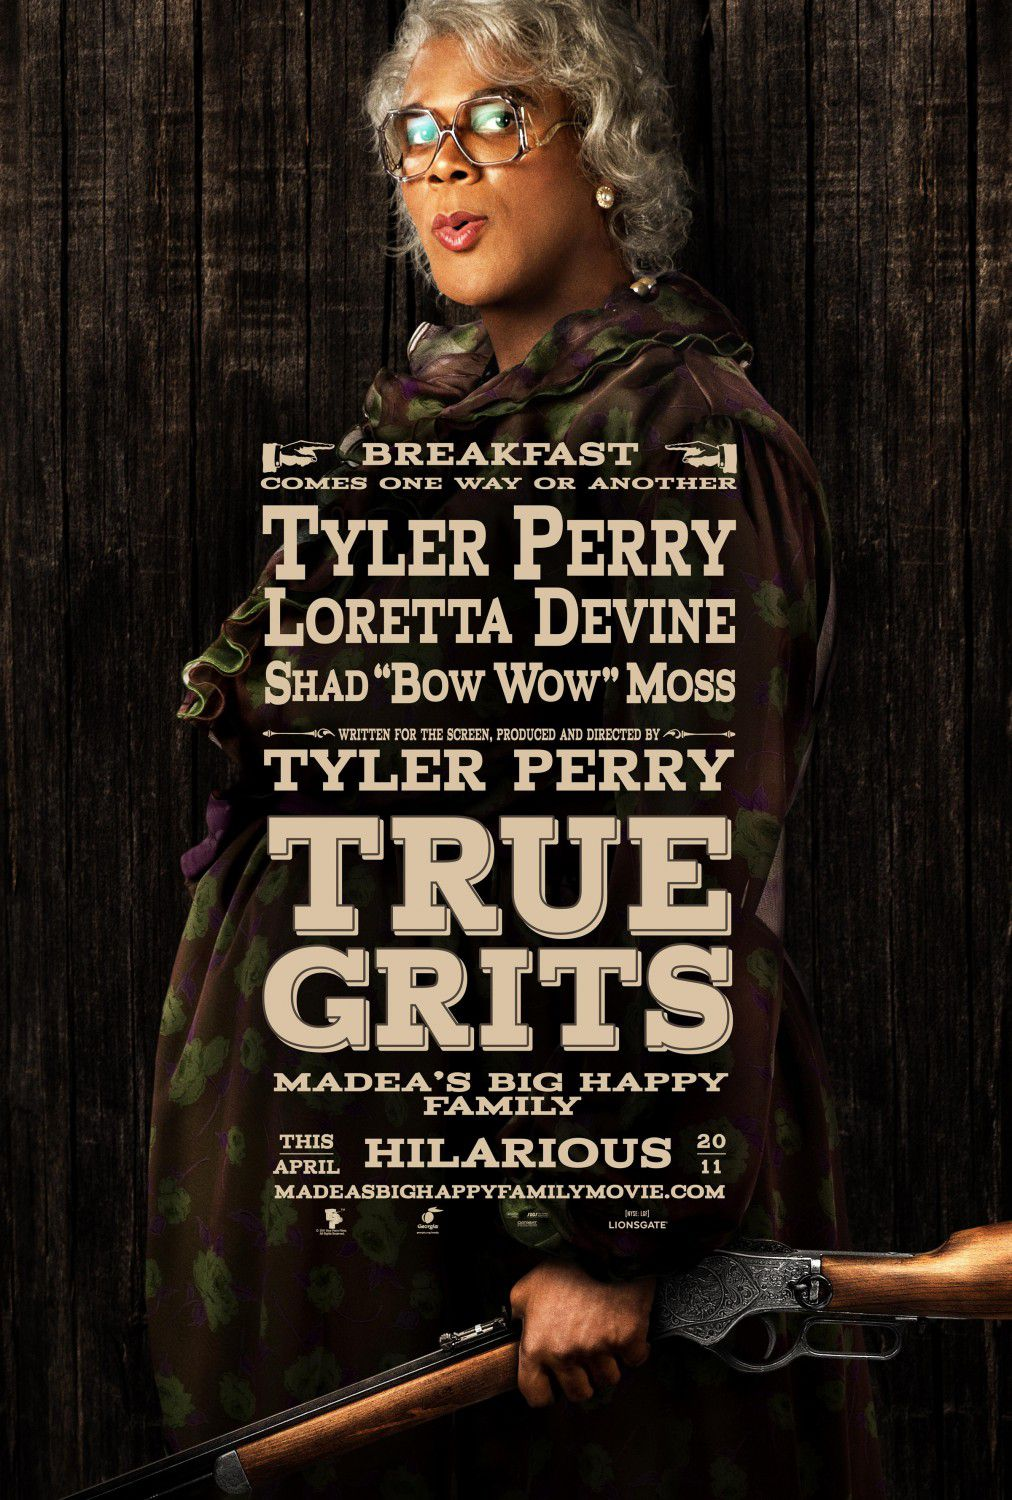 Madeas big Happy Family - Madea Famiglia Felice - Tyler Perry - film fun poster - True Grits Madea